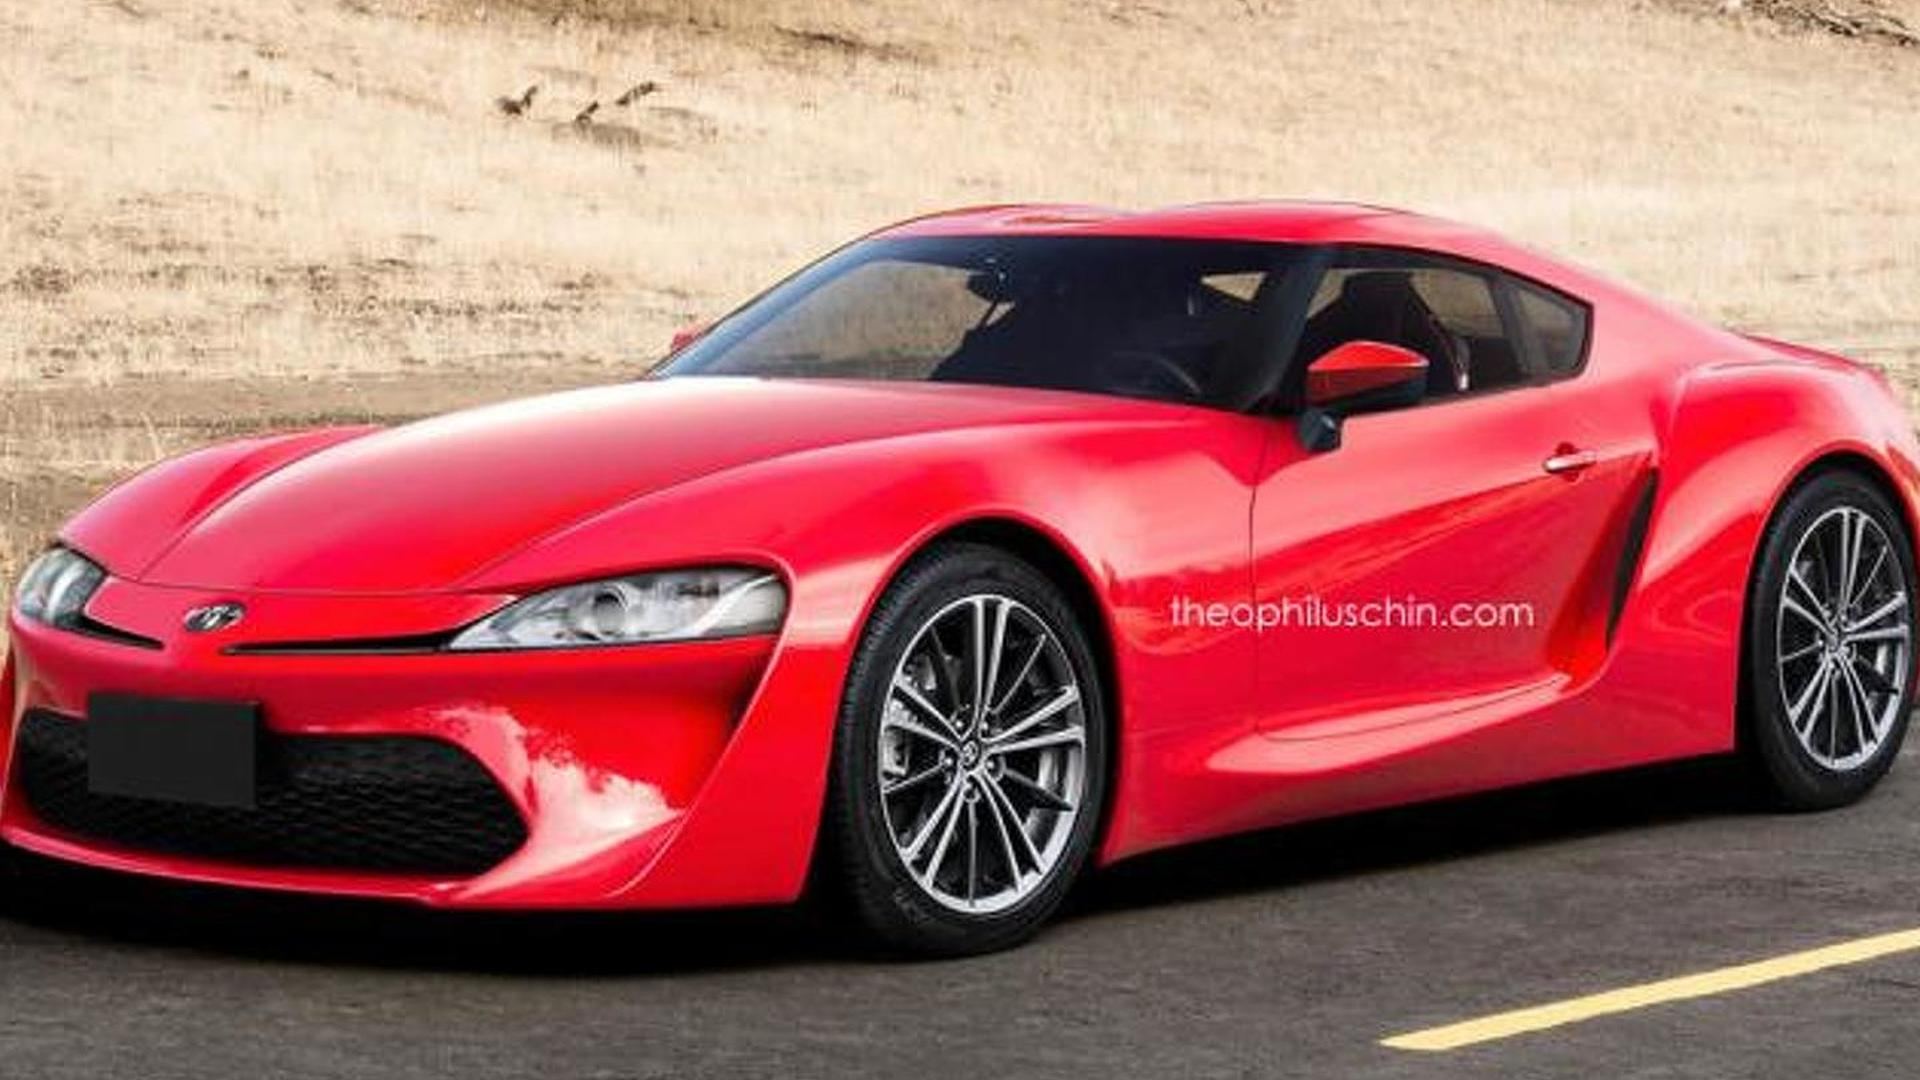 Toyota Ft 1 >> Next generation Toyota Supra and Nissan 370Z rendered | Motor1.com